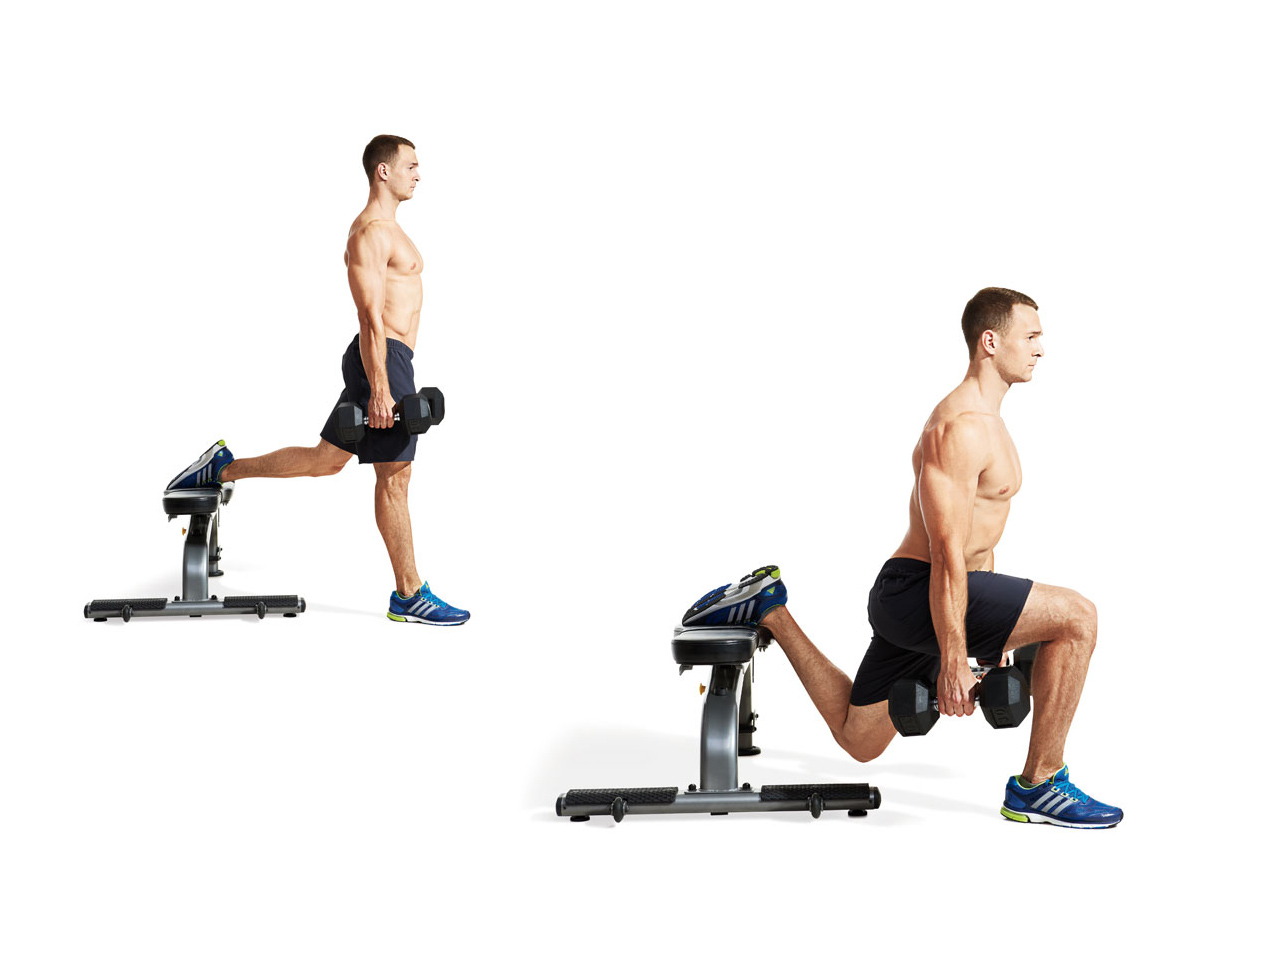 Quads Workouts: The 30 Best Quad Exercises of All Time